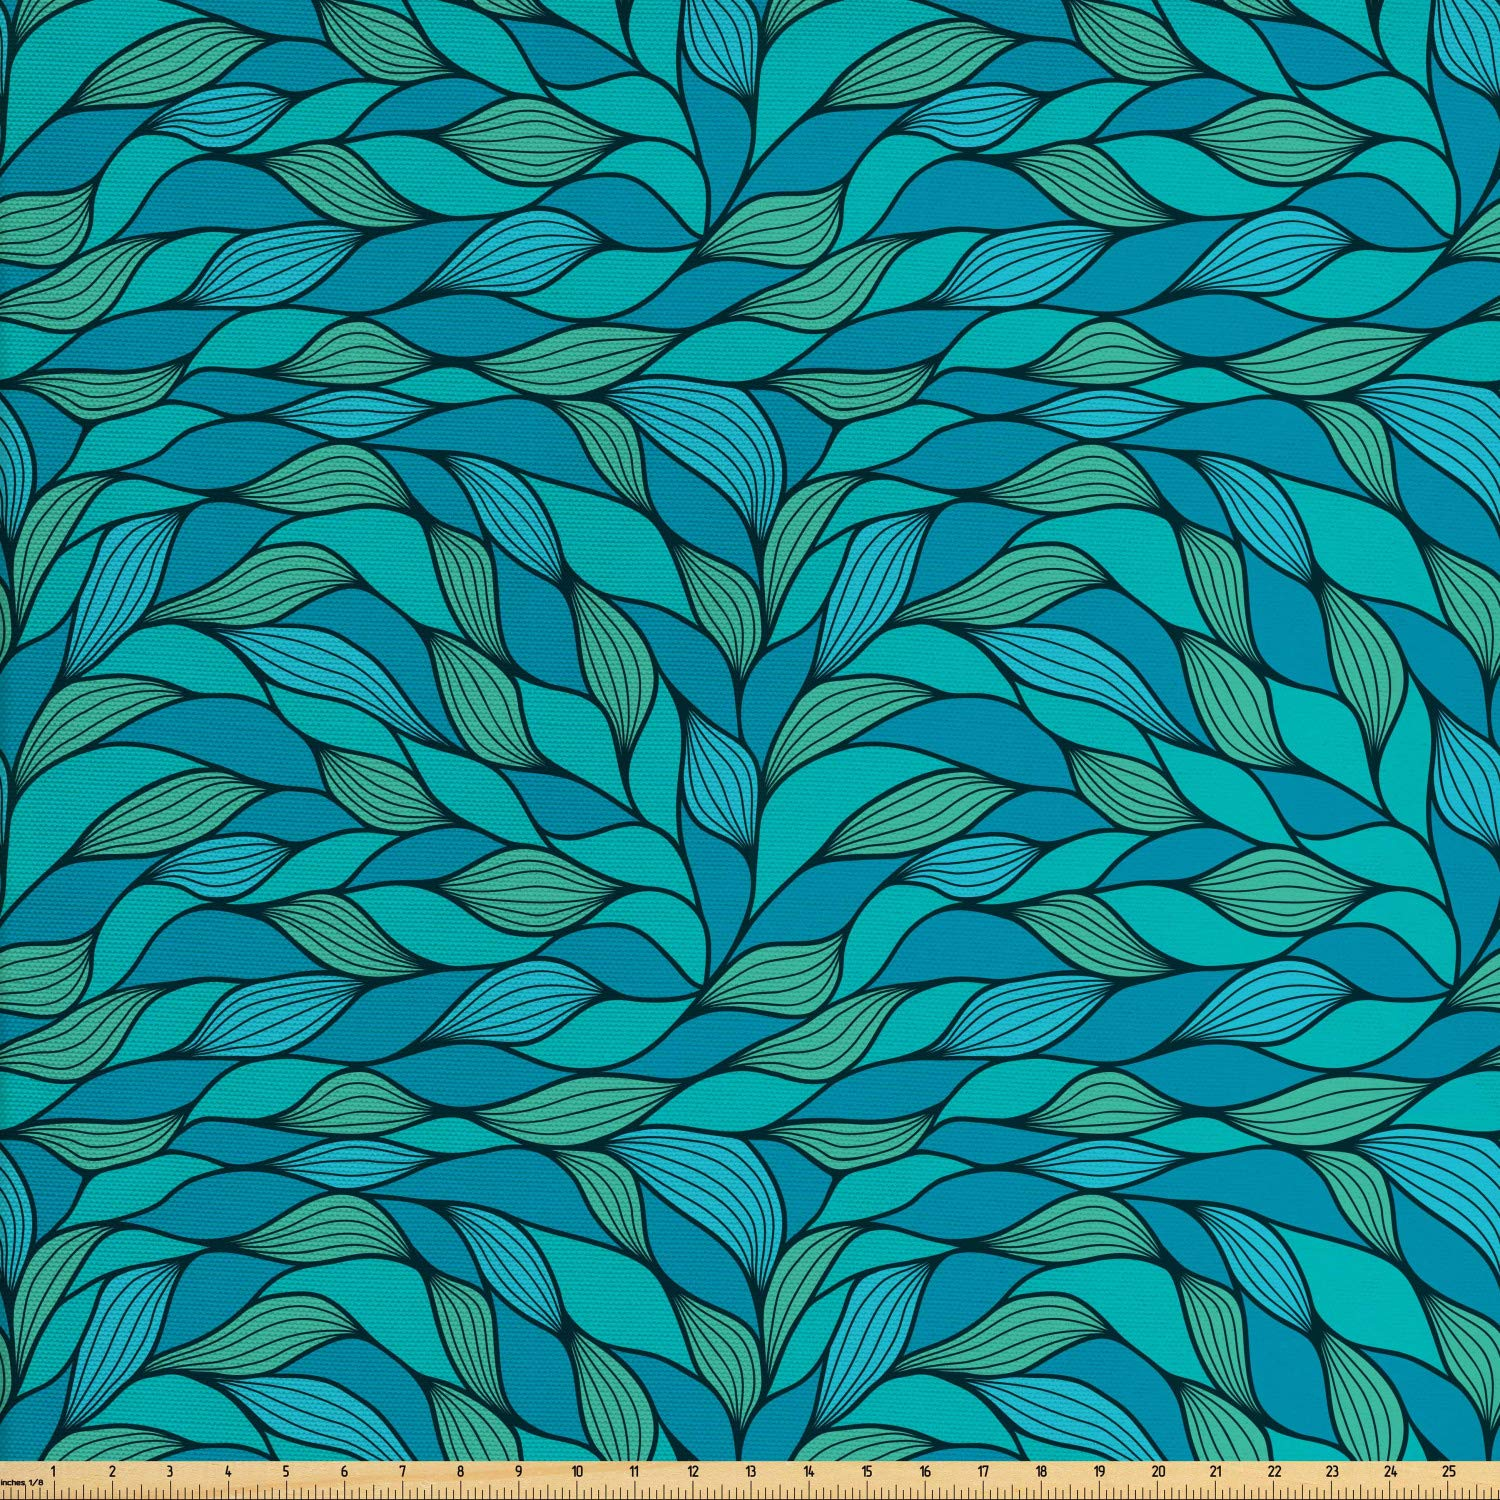 Ambesonne Teal Fabric by The Yard, Abstract Wave Design Ocean Themed Marine Life Pattern Print, Decorative Fabric for Upholstery and Home Accents, 5 Yards, Blue Mint Green